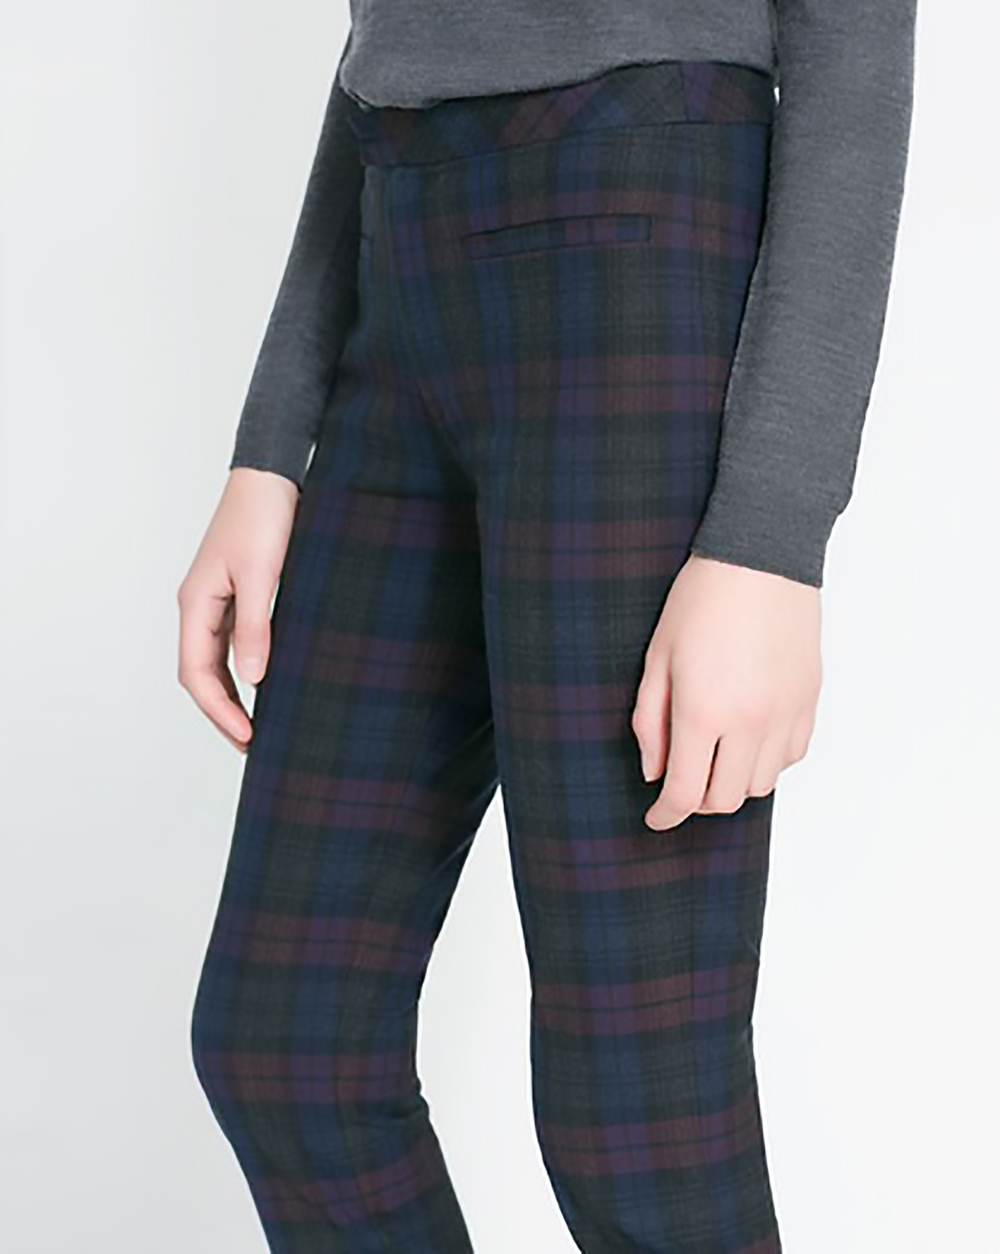 zara checked legging style trousers mad for plaid 1500.jpg